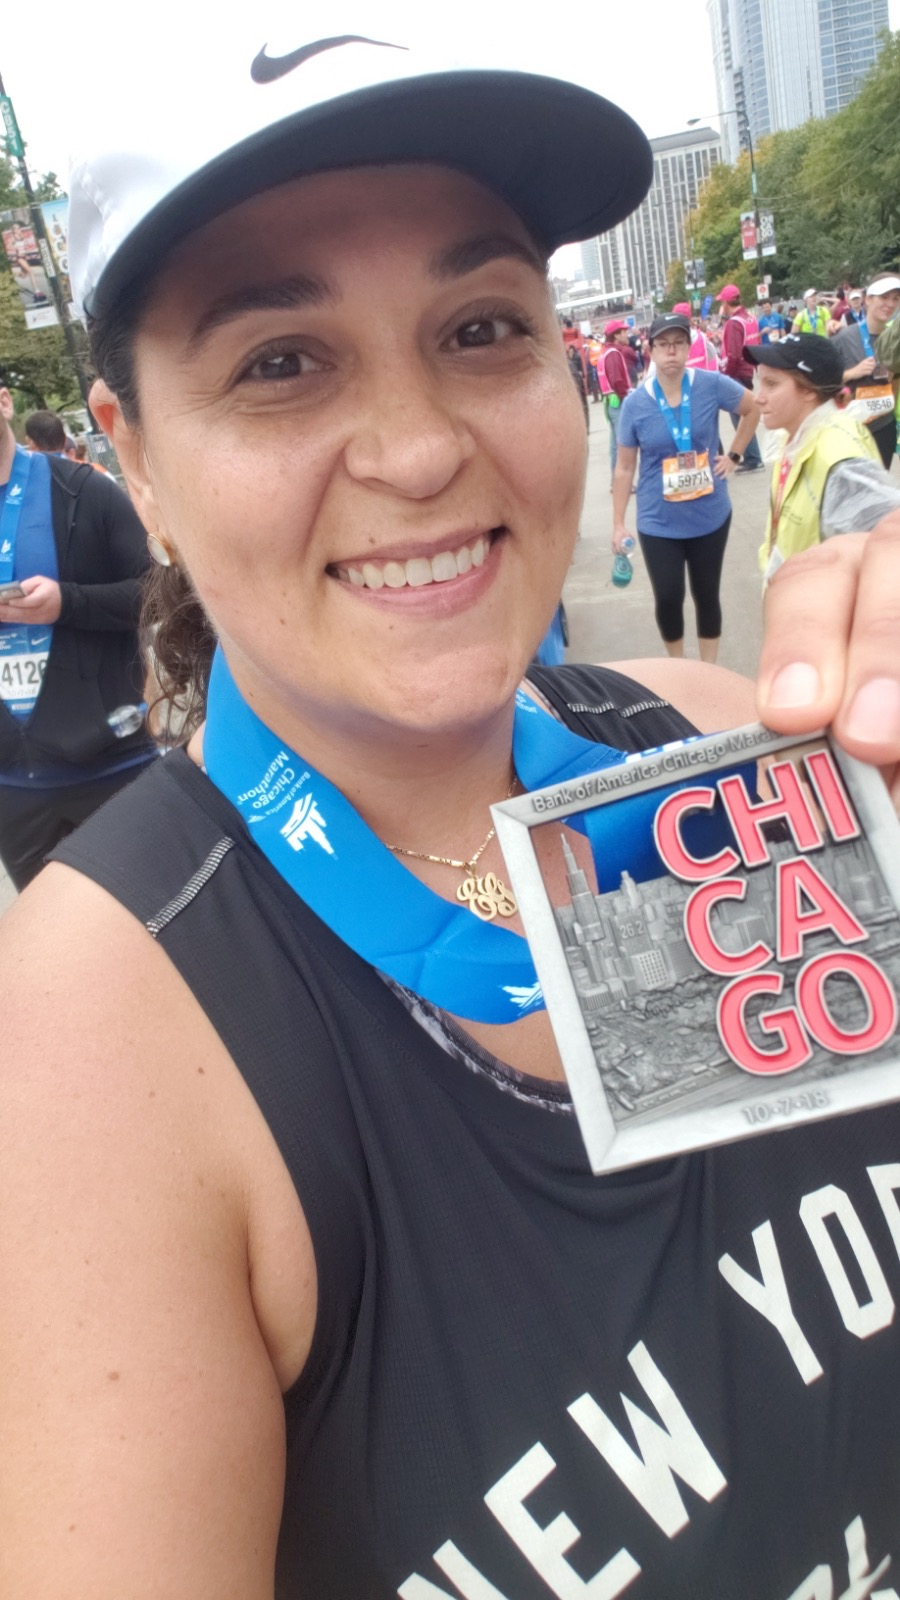 CHICAGO 2018 FINISHER 2 of 3!